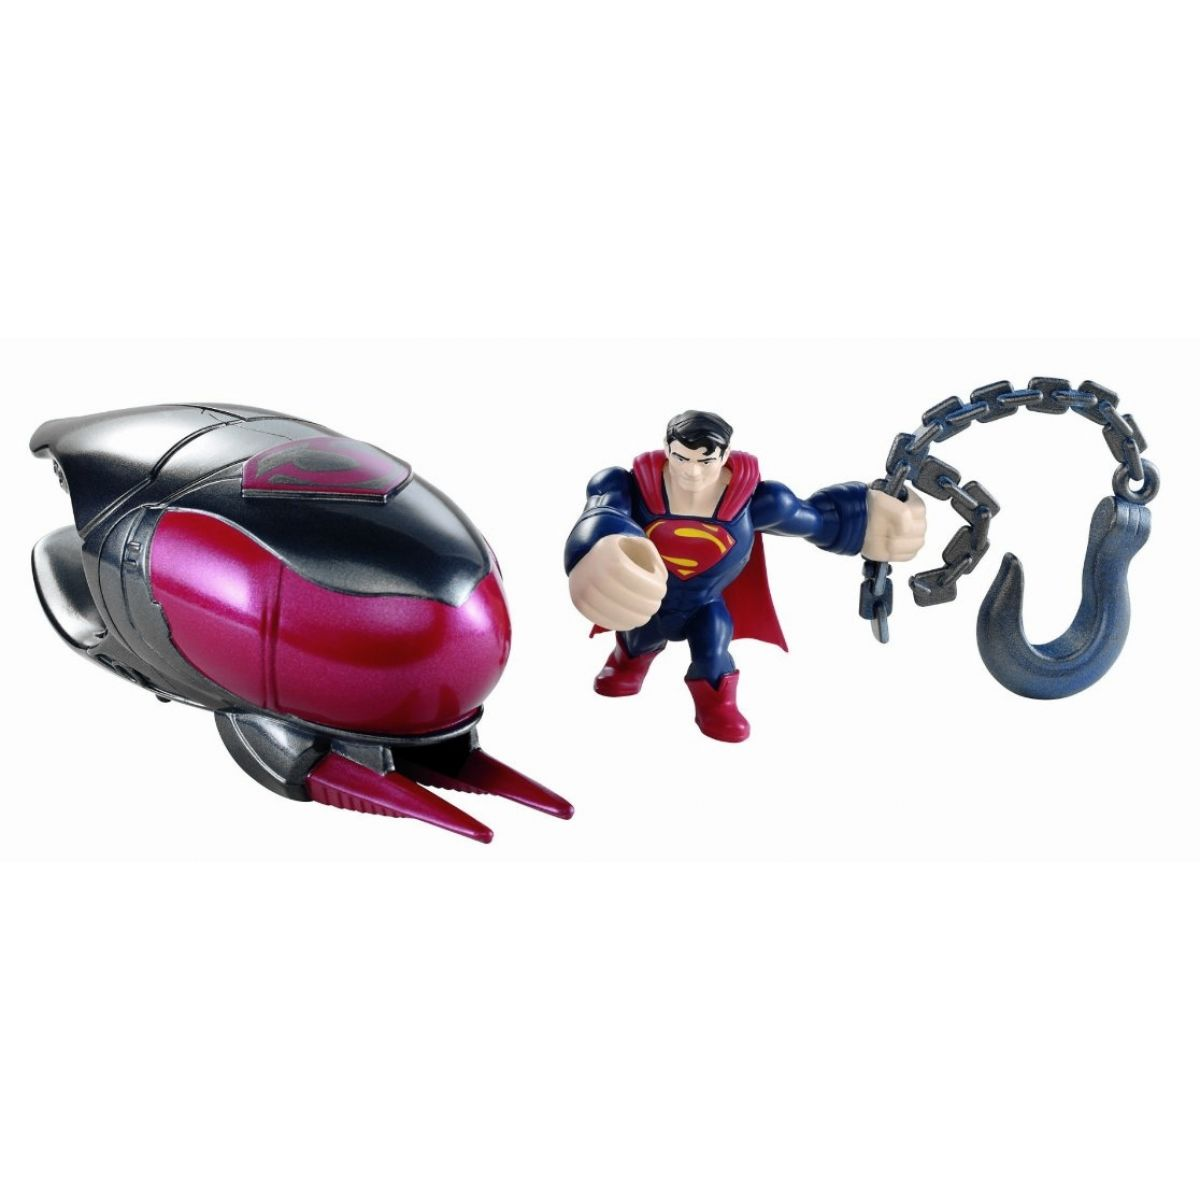 Mattel Superman exploders figurky a vozidla - Cruiser Smash Battle Pack